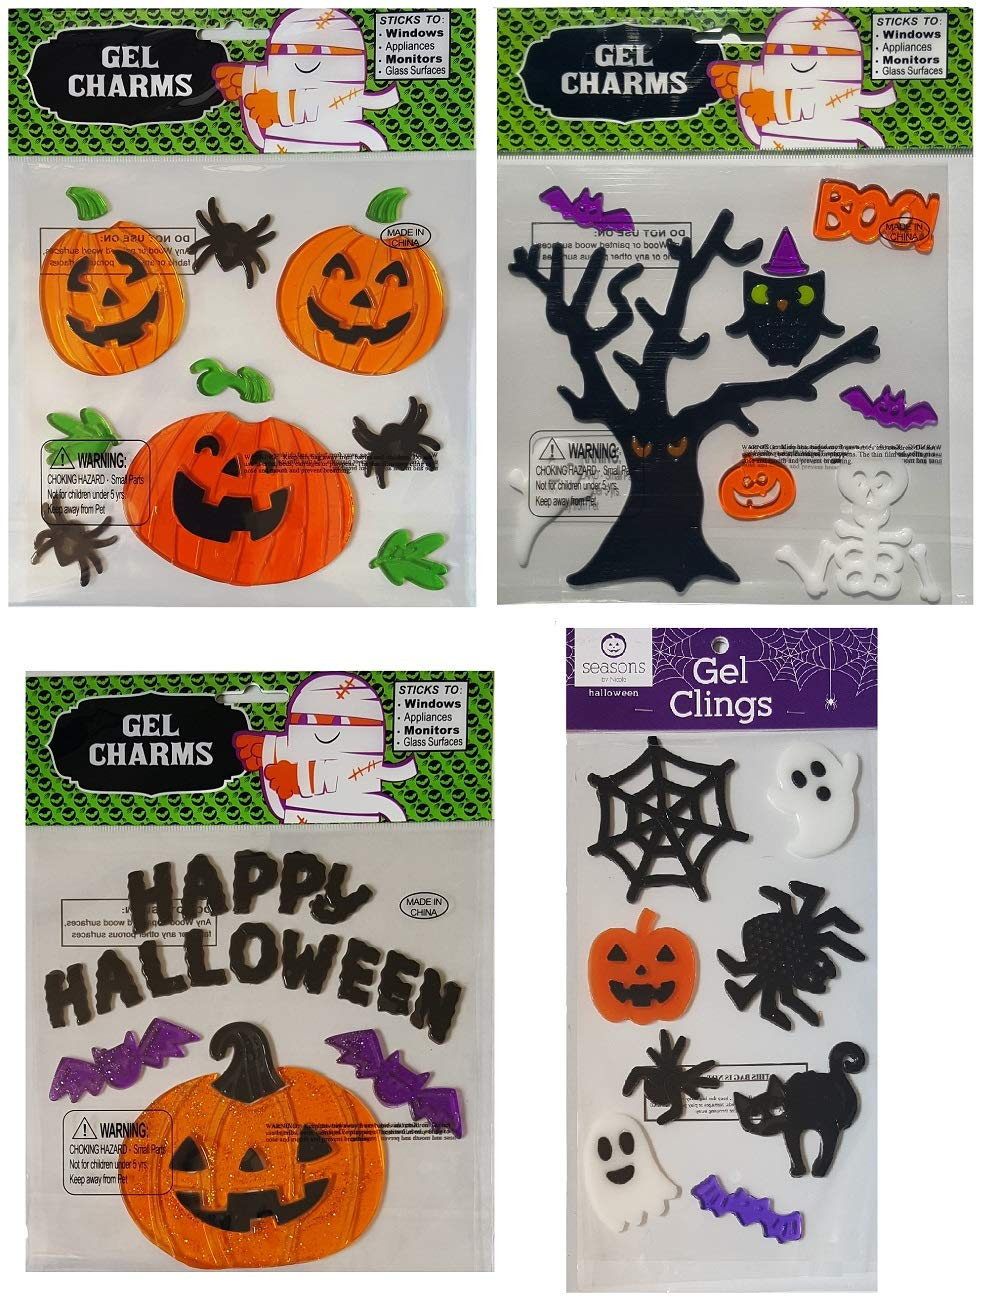 Halloween Decorations - Window Gels with Ghosts, Spiders, Pumpkins, Haunted Tree, Bats, Happy Halloween, and More – 4 Sheets